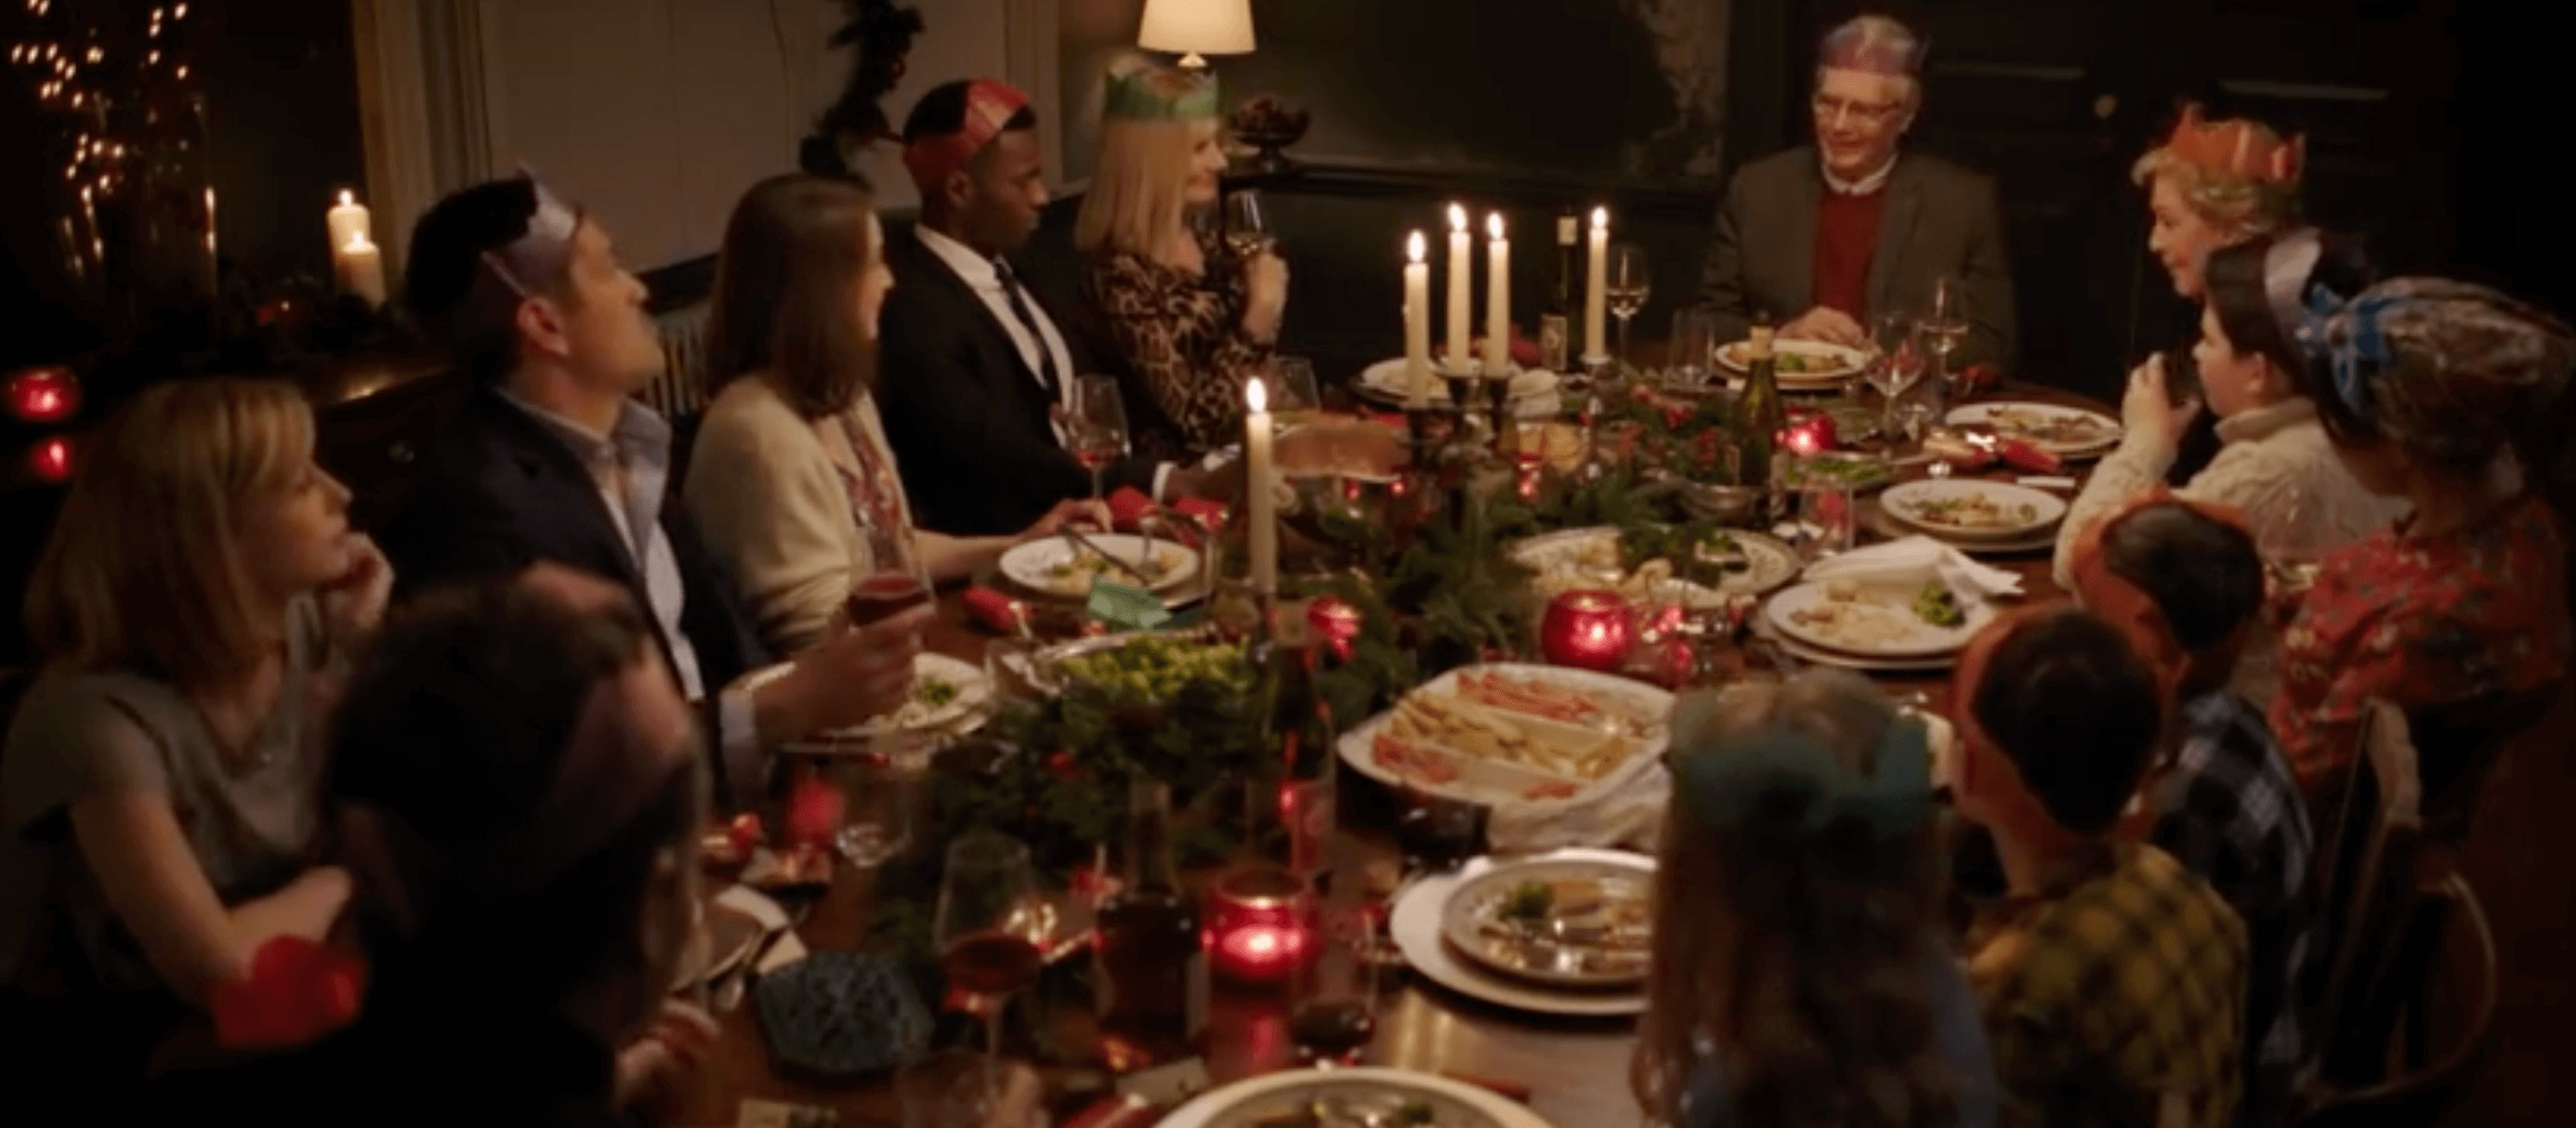 A large family is seated around a Christmas dinner.